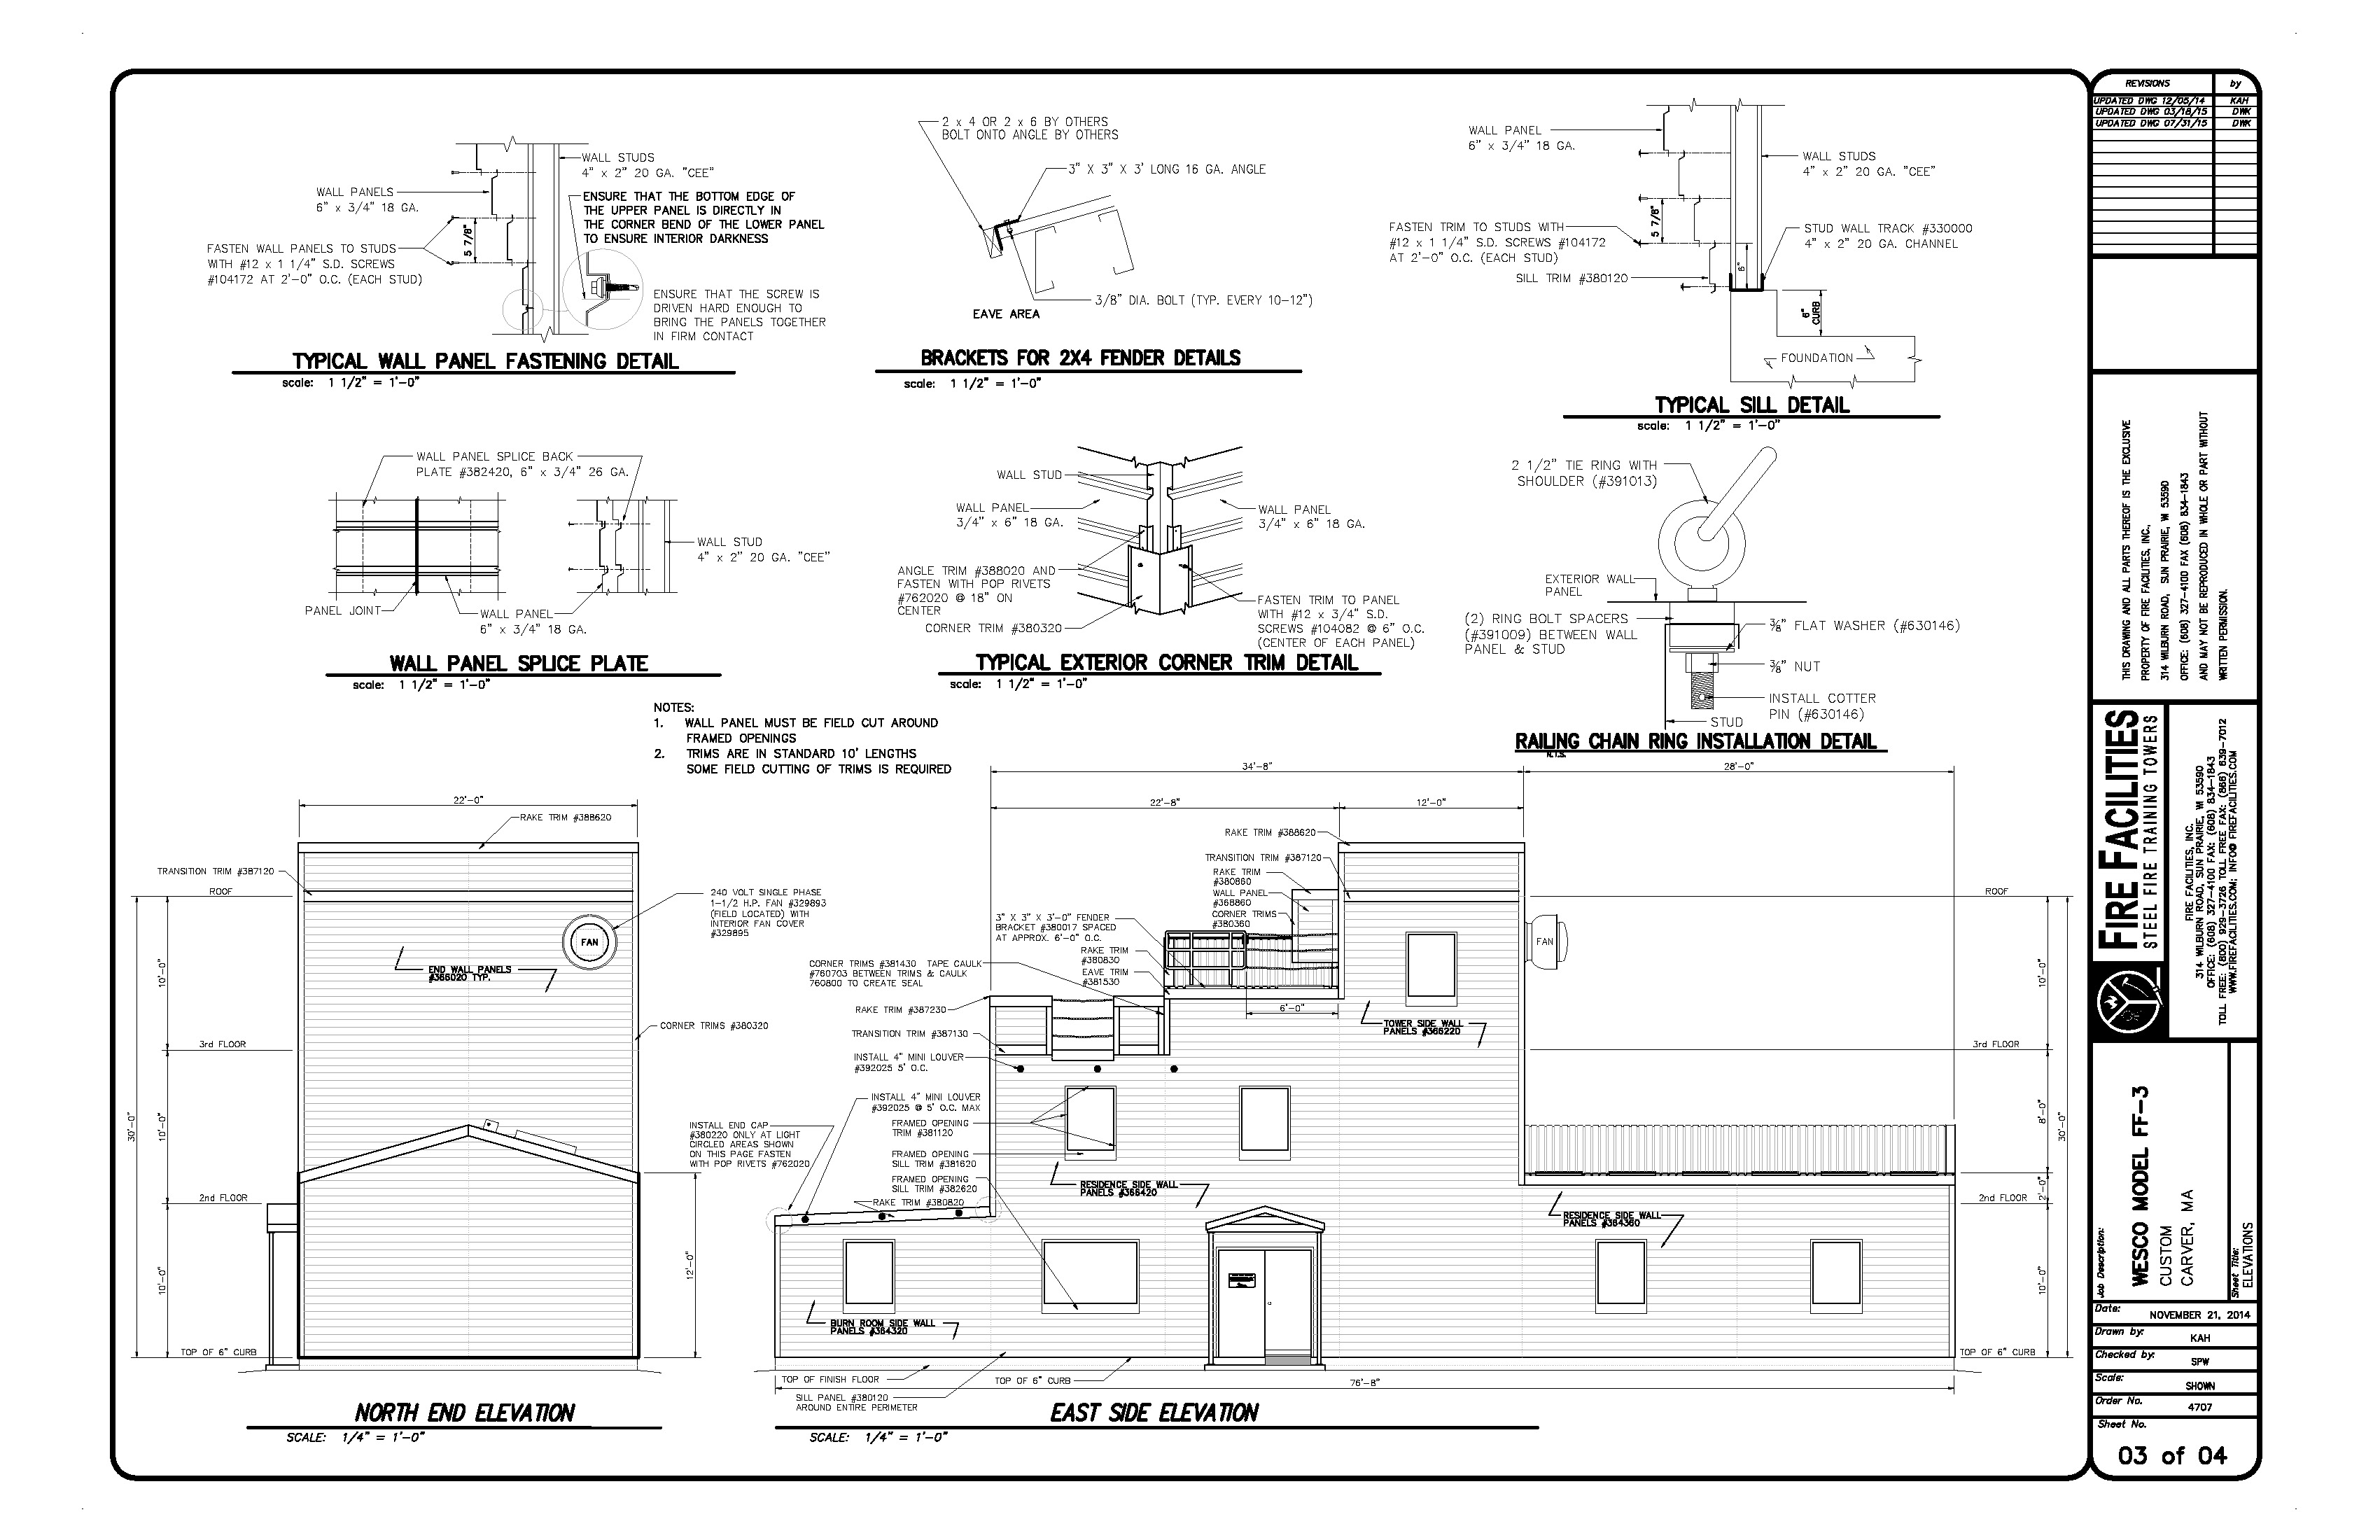 Trainng Facility Drawing 4707D_07-31-15 ATTACHMENT B_Page_3